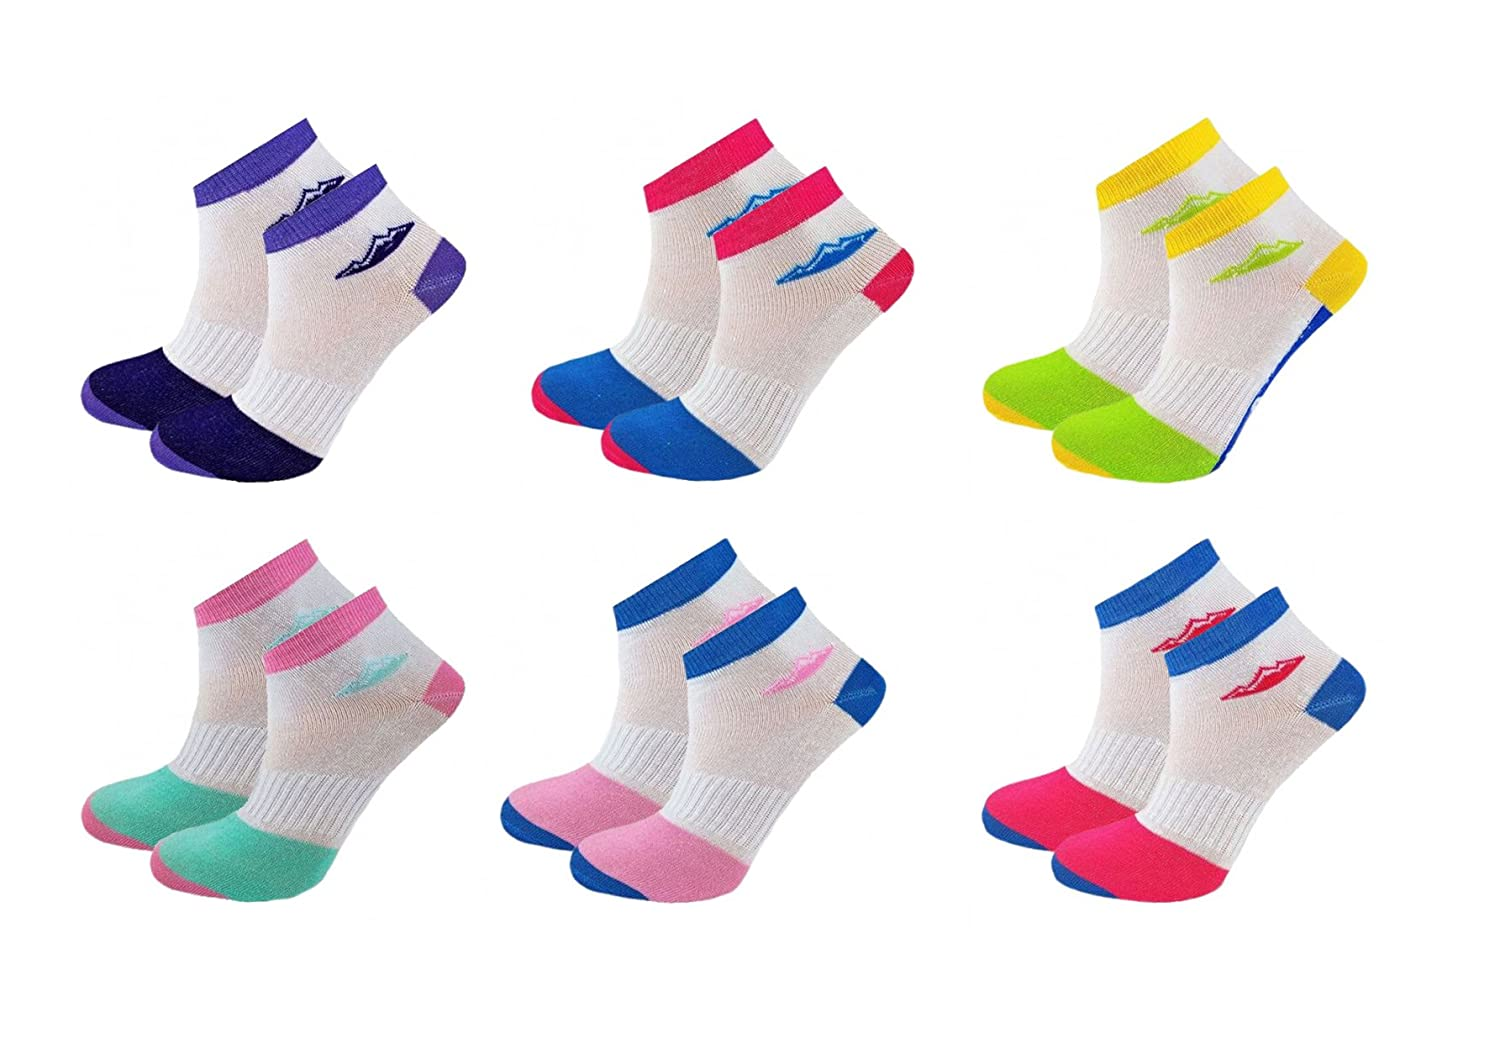 12 Pairs Ladies Sport Performance Trainer Low cut Socks - Size 4-8